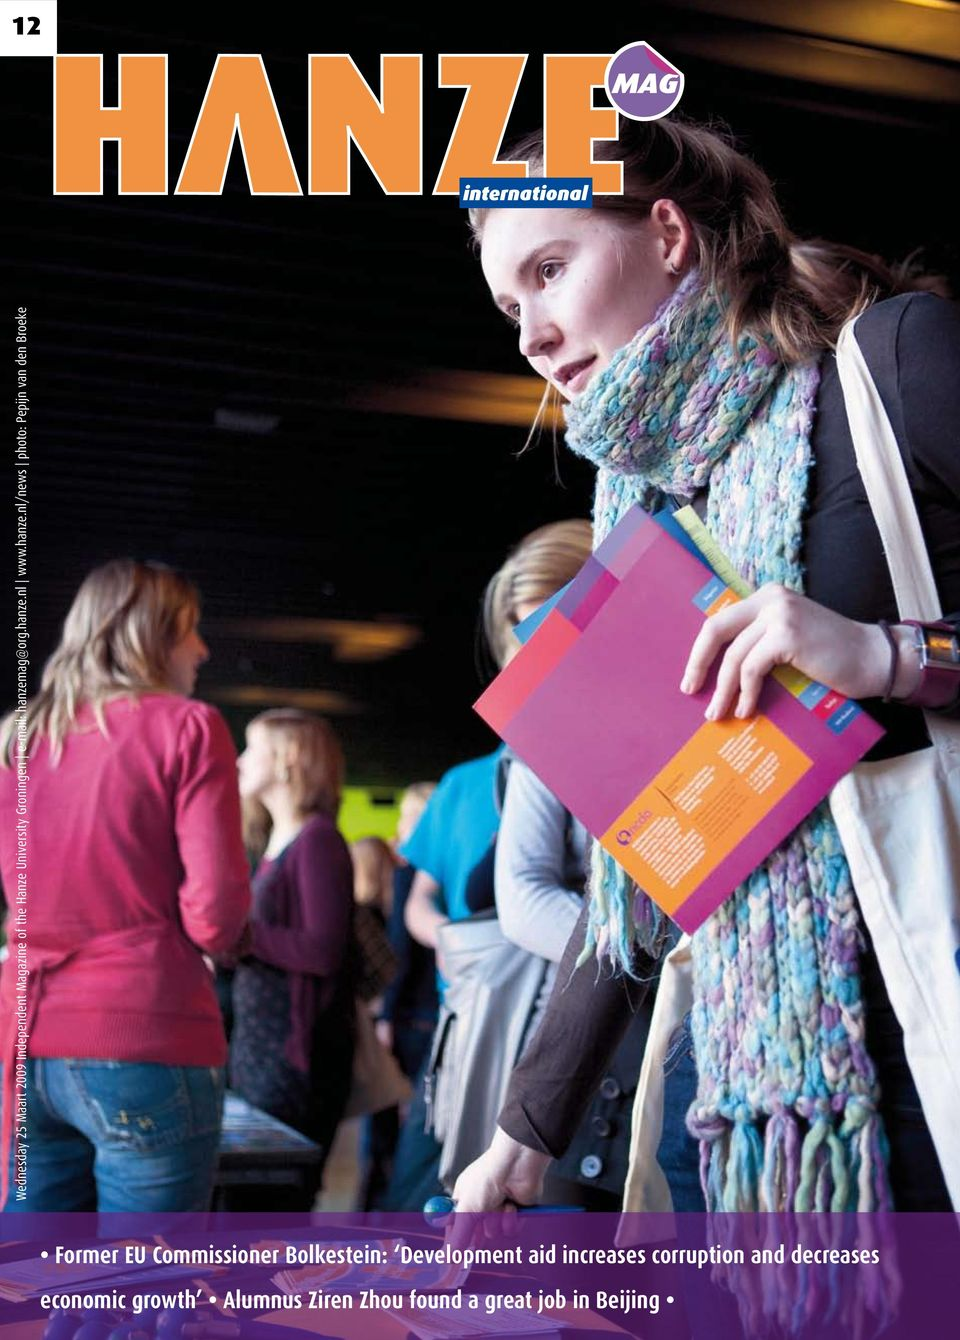 Wednesday 25 Maart 2009 Independent Magazine of the Hanze University